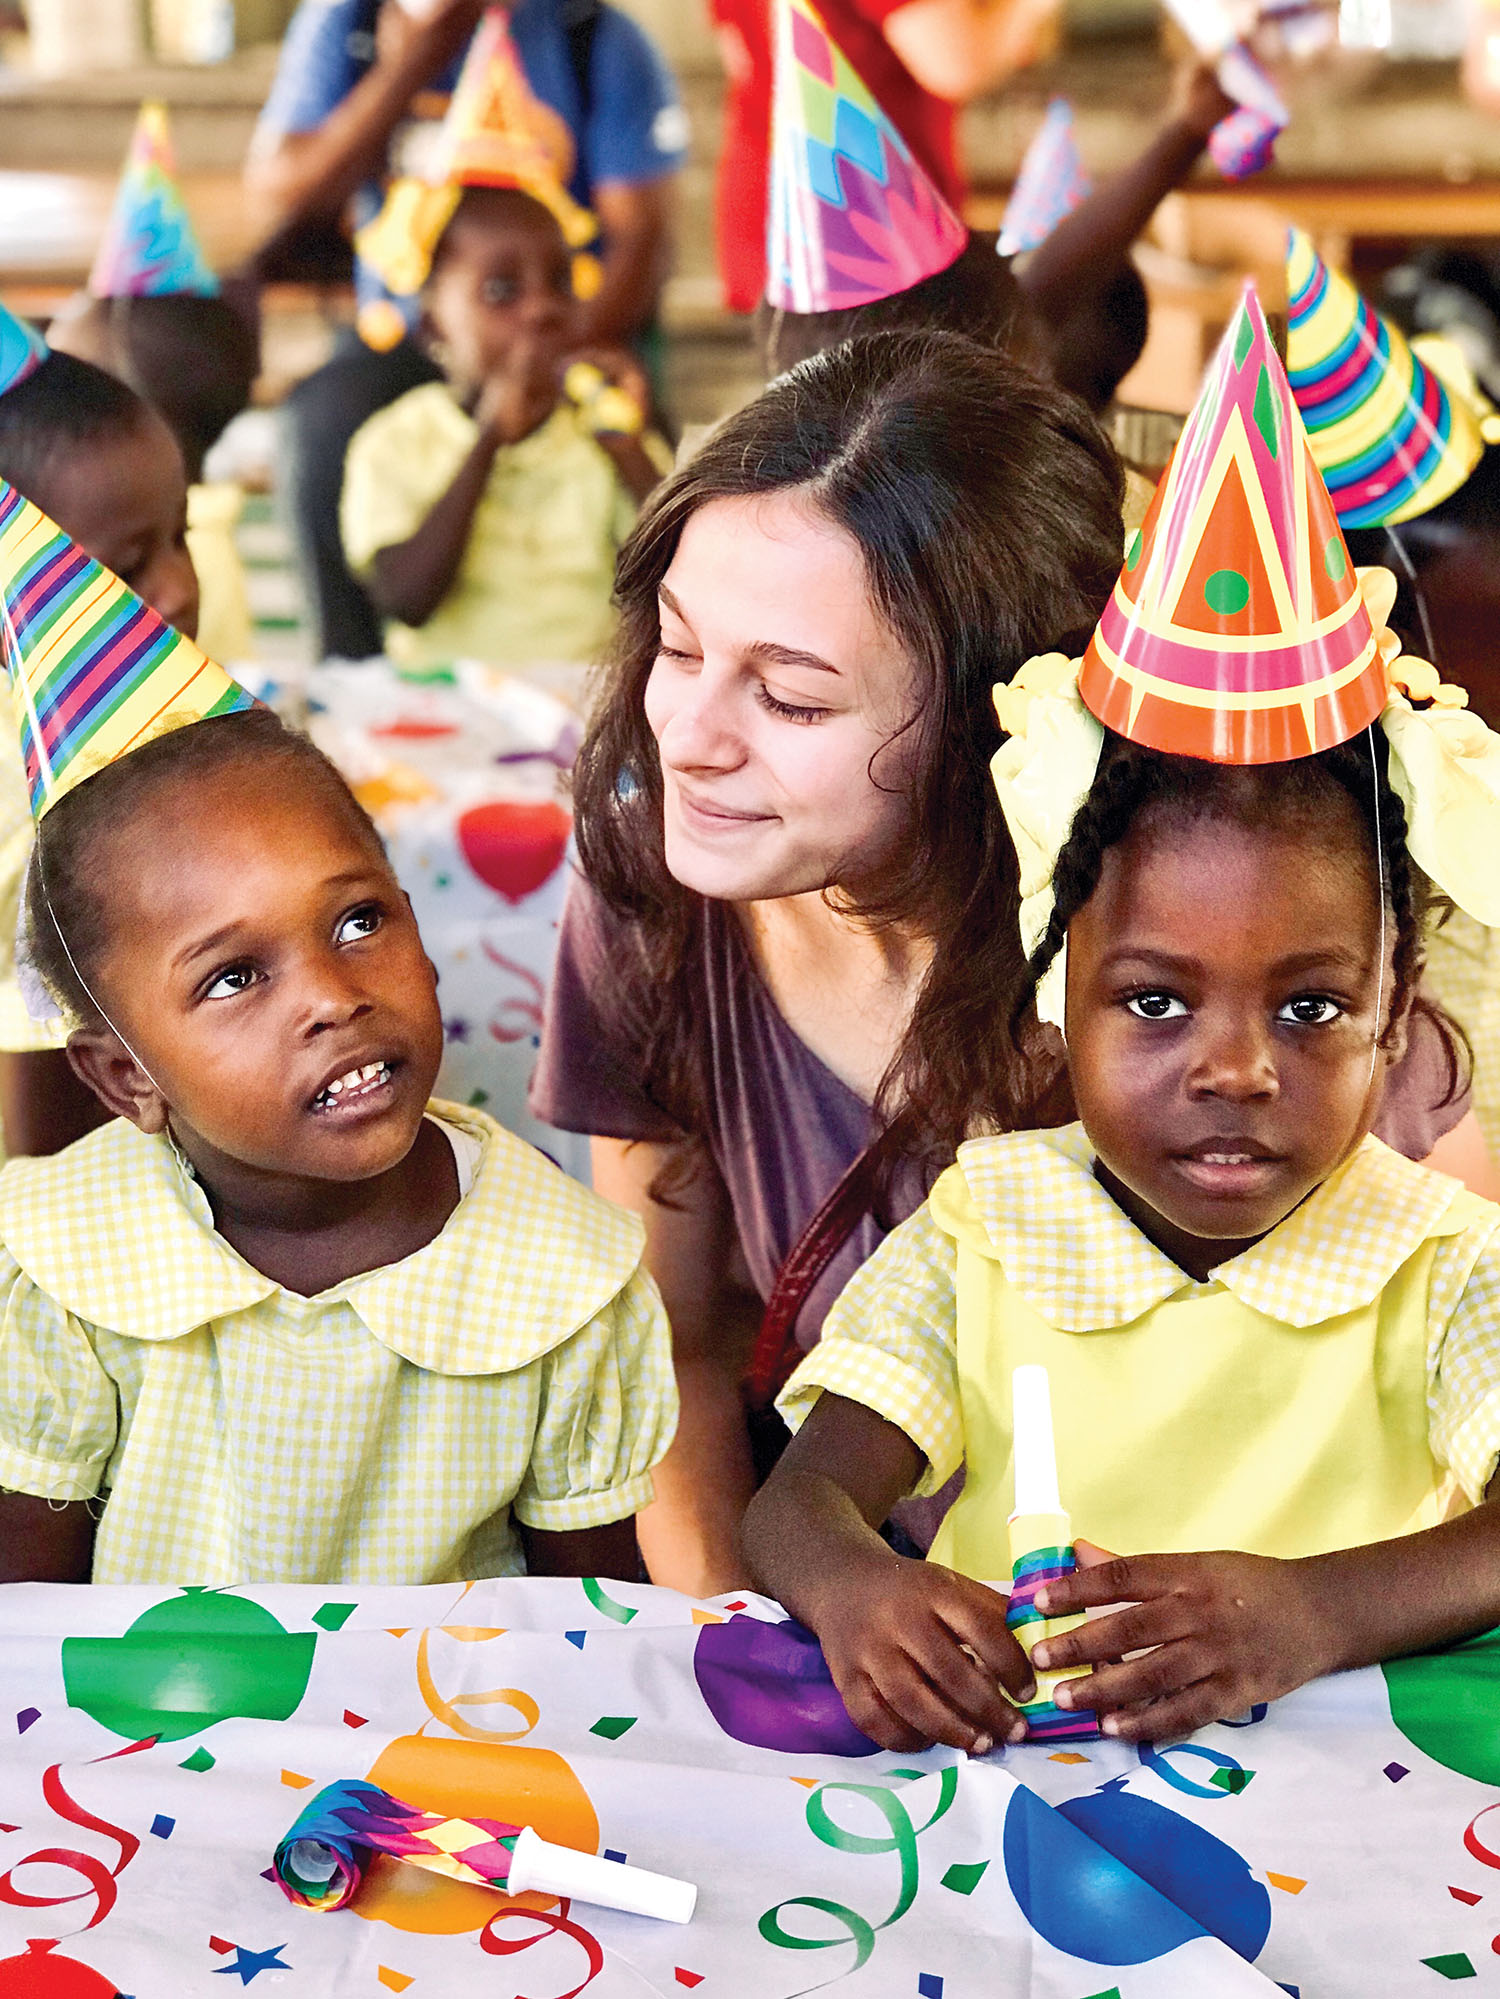 Do you see the potential in each child? God does and uses us to help empower children to rise up to become new leaders.